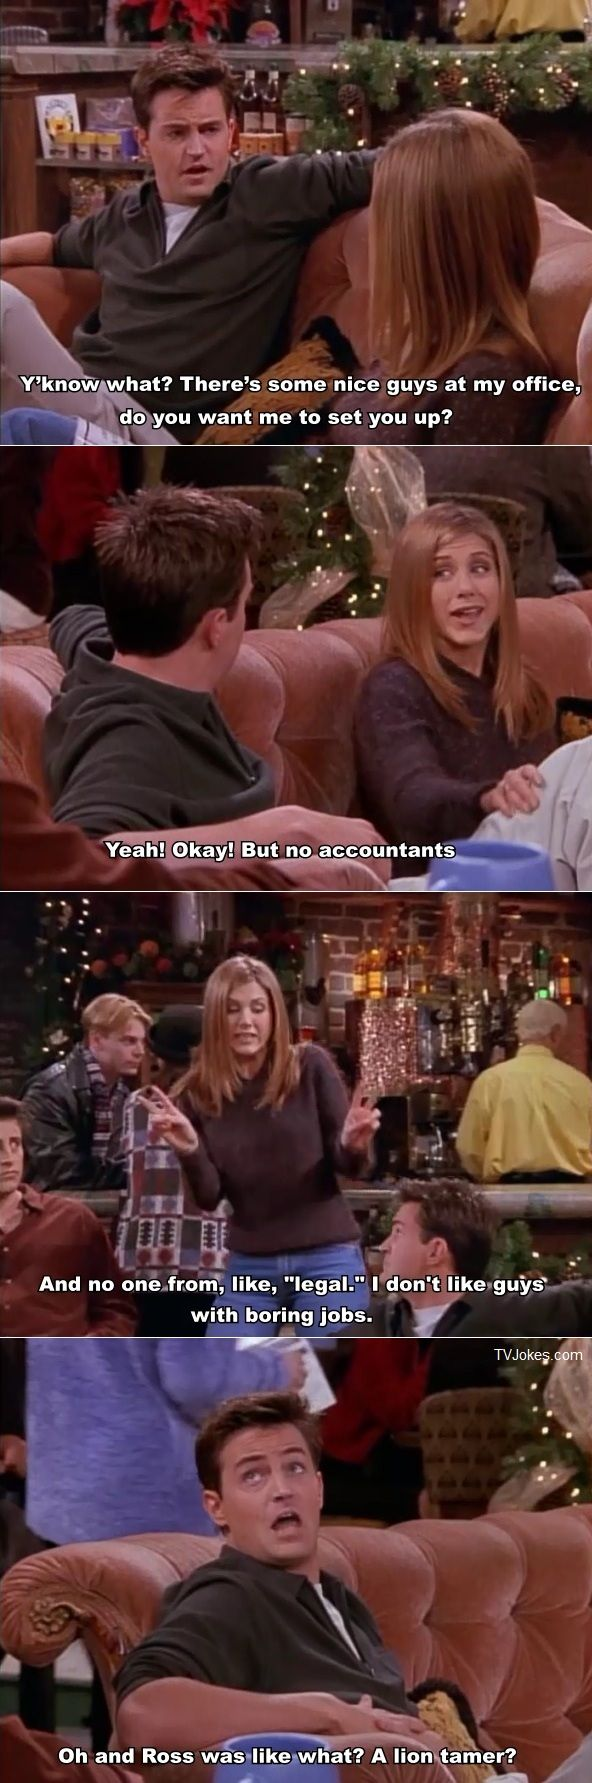 "Chandler: Y'know what? There's some nice guys at my office, do you want me to set you up? Rachel: Yeah! Okay! But no accountants. And no one from, like, ""legal."" I don't like guys with boring jobs. Chandler: Oh and Ross was like what? A lion tamer? Friends TV show quotes"